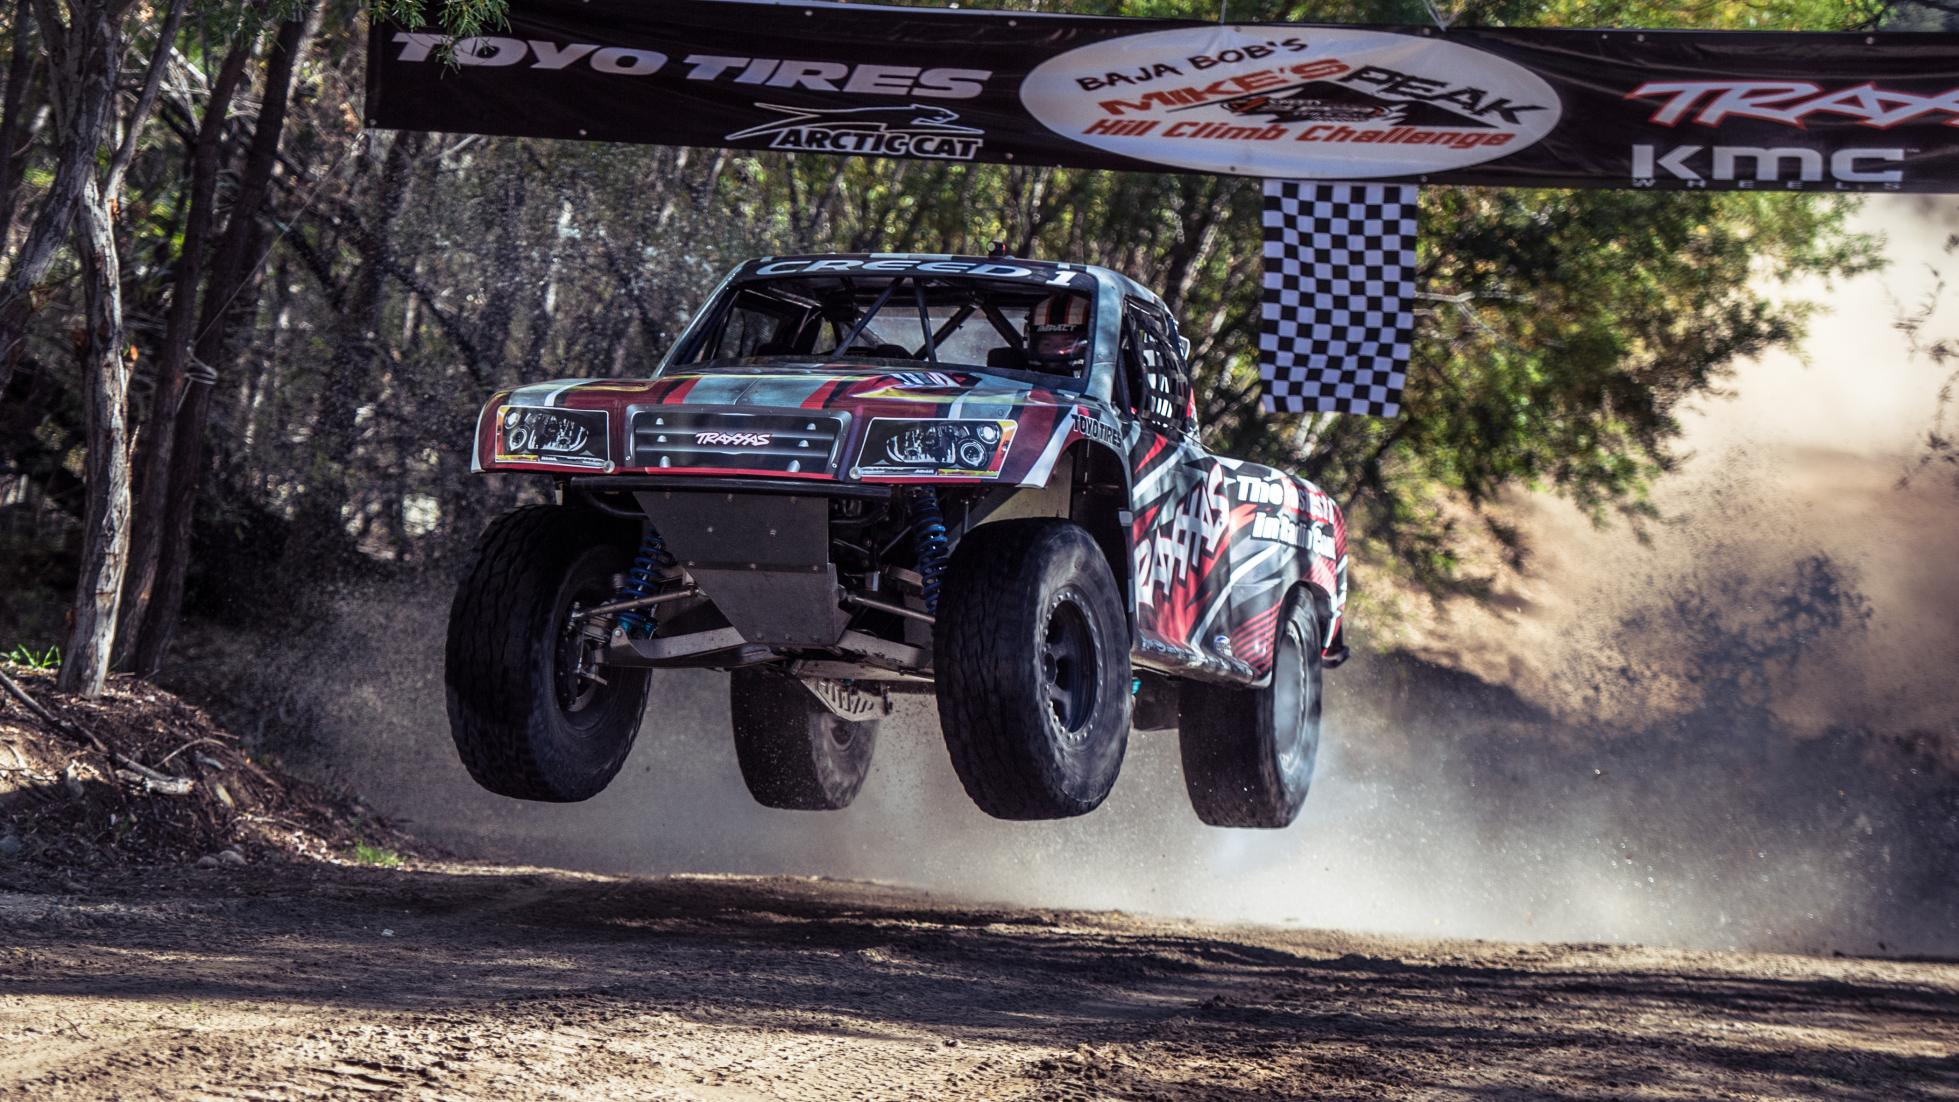 Sheldon Creed getting some solid air across the creek bed finish line Photo: topgear